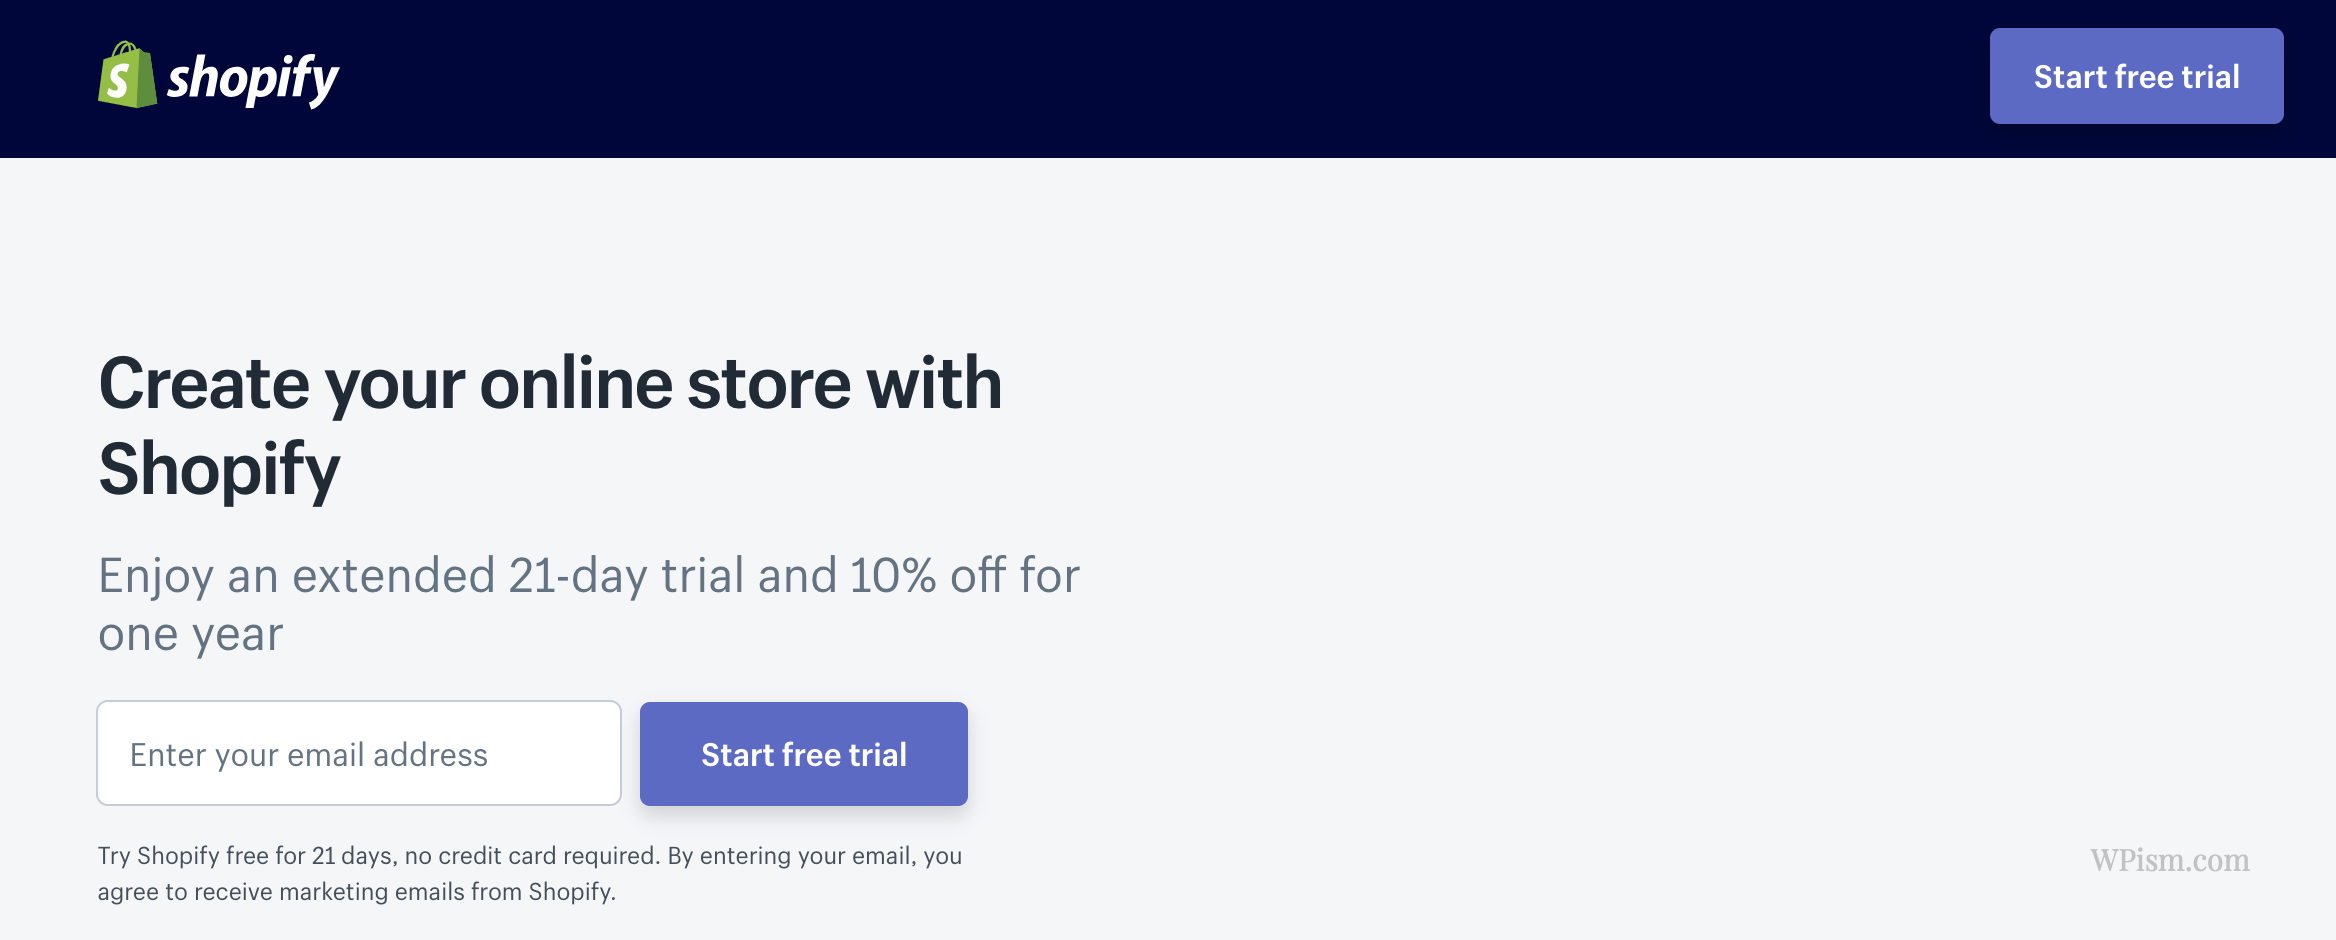 Shopify discount code for extended trial